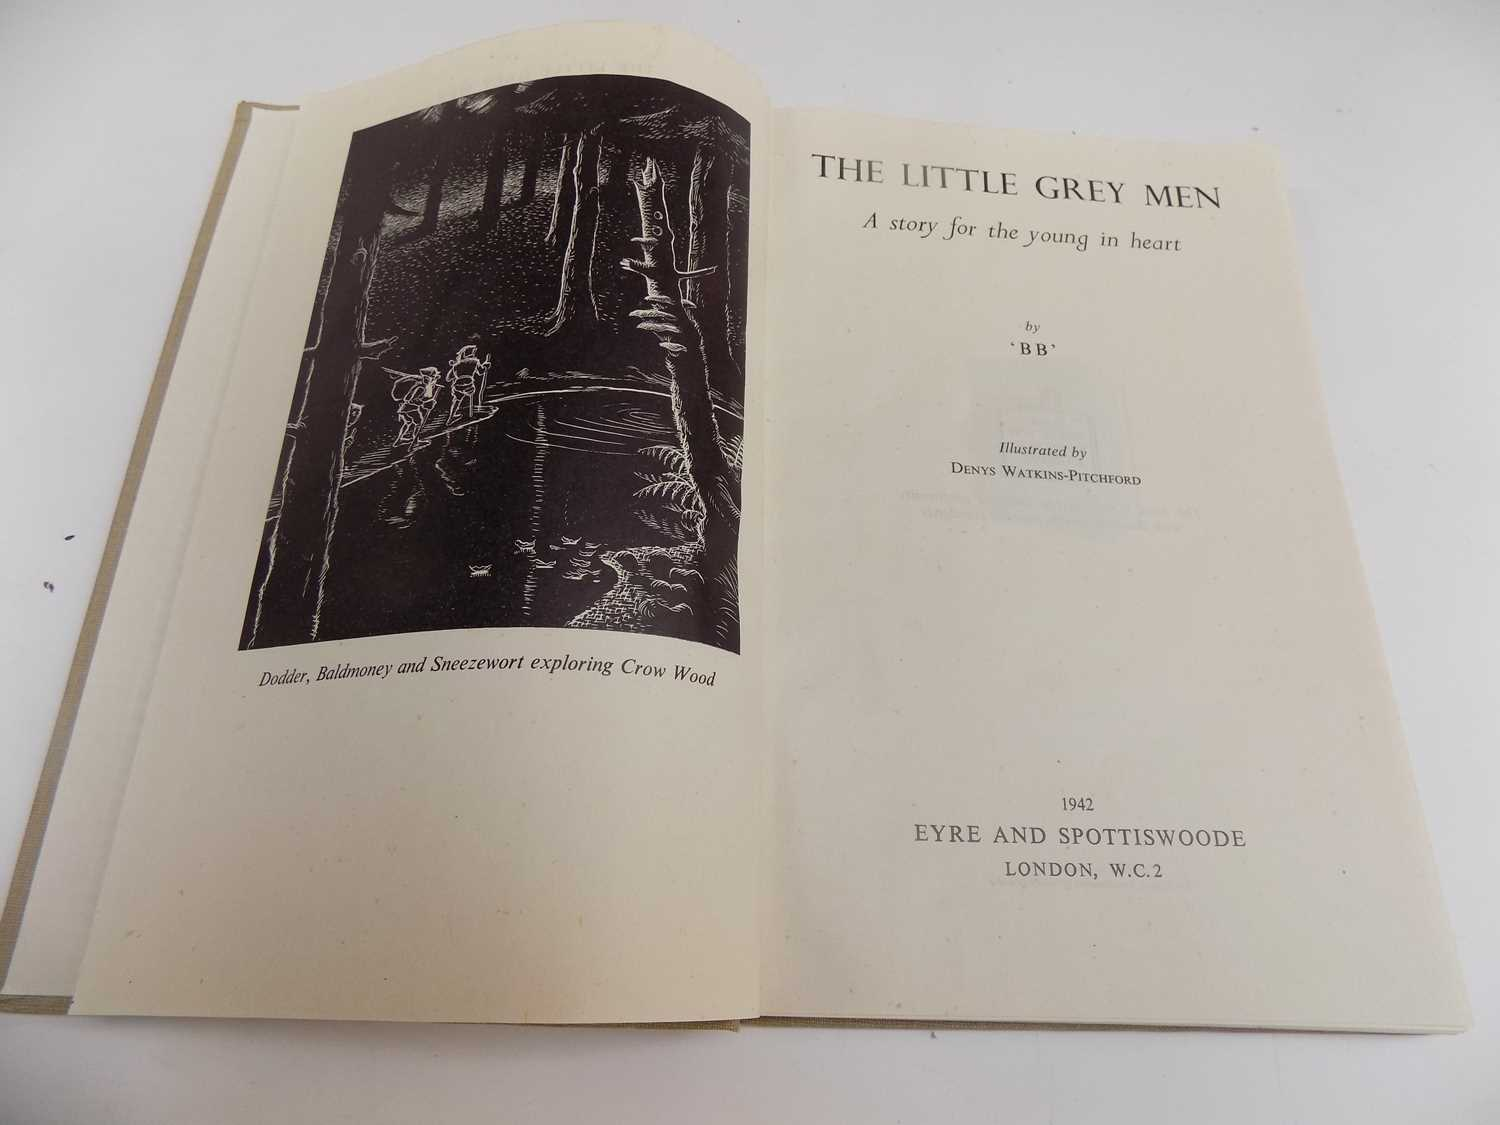 """Lot 1247 - DENYS WATKINS - PITCHFORD. """"The Little Grey..."""